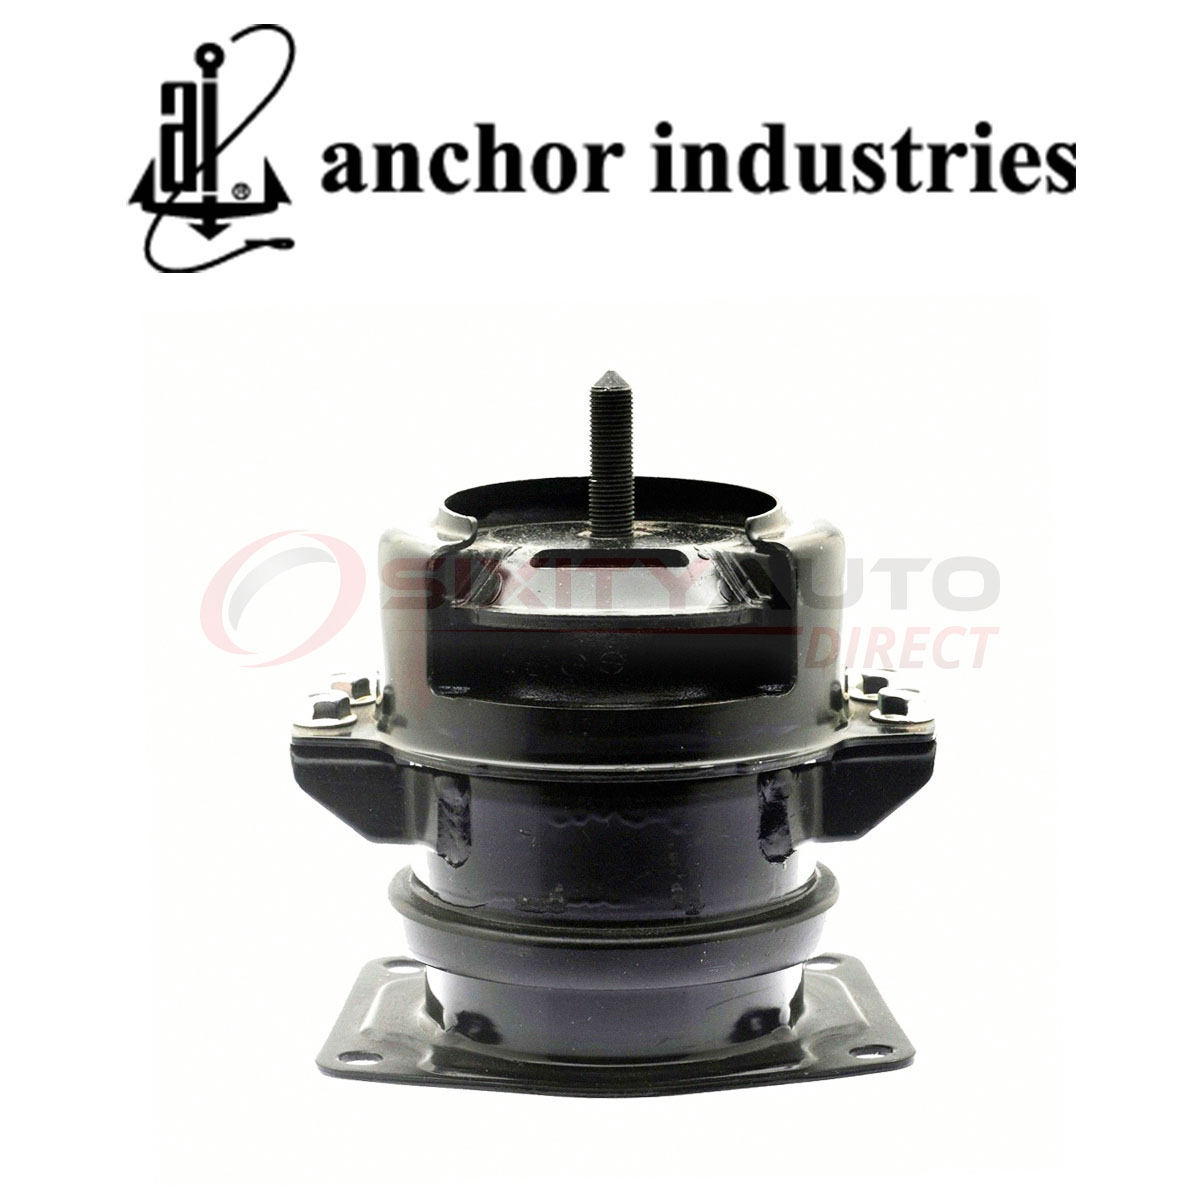 Anchor Engine Mount For 2000-2003 Acura TL 3.2L V6